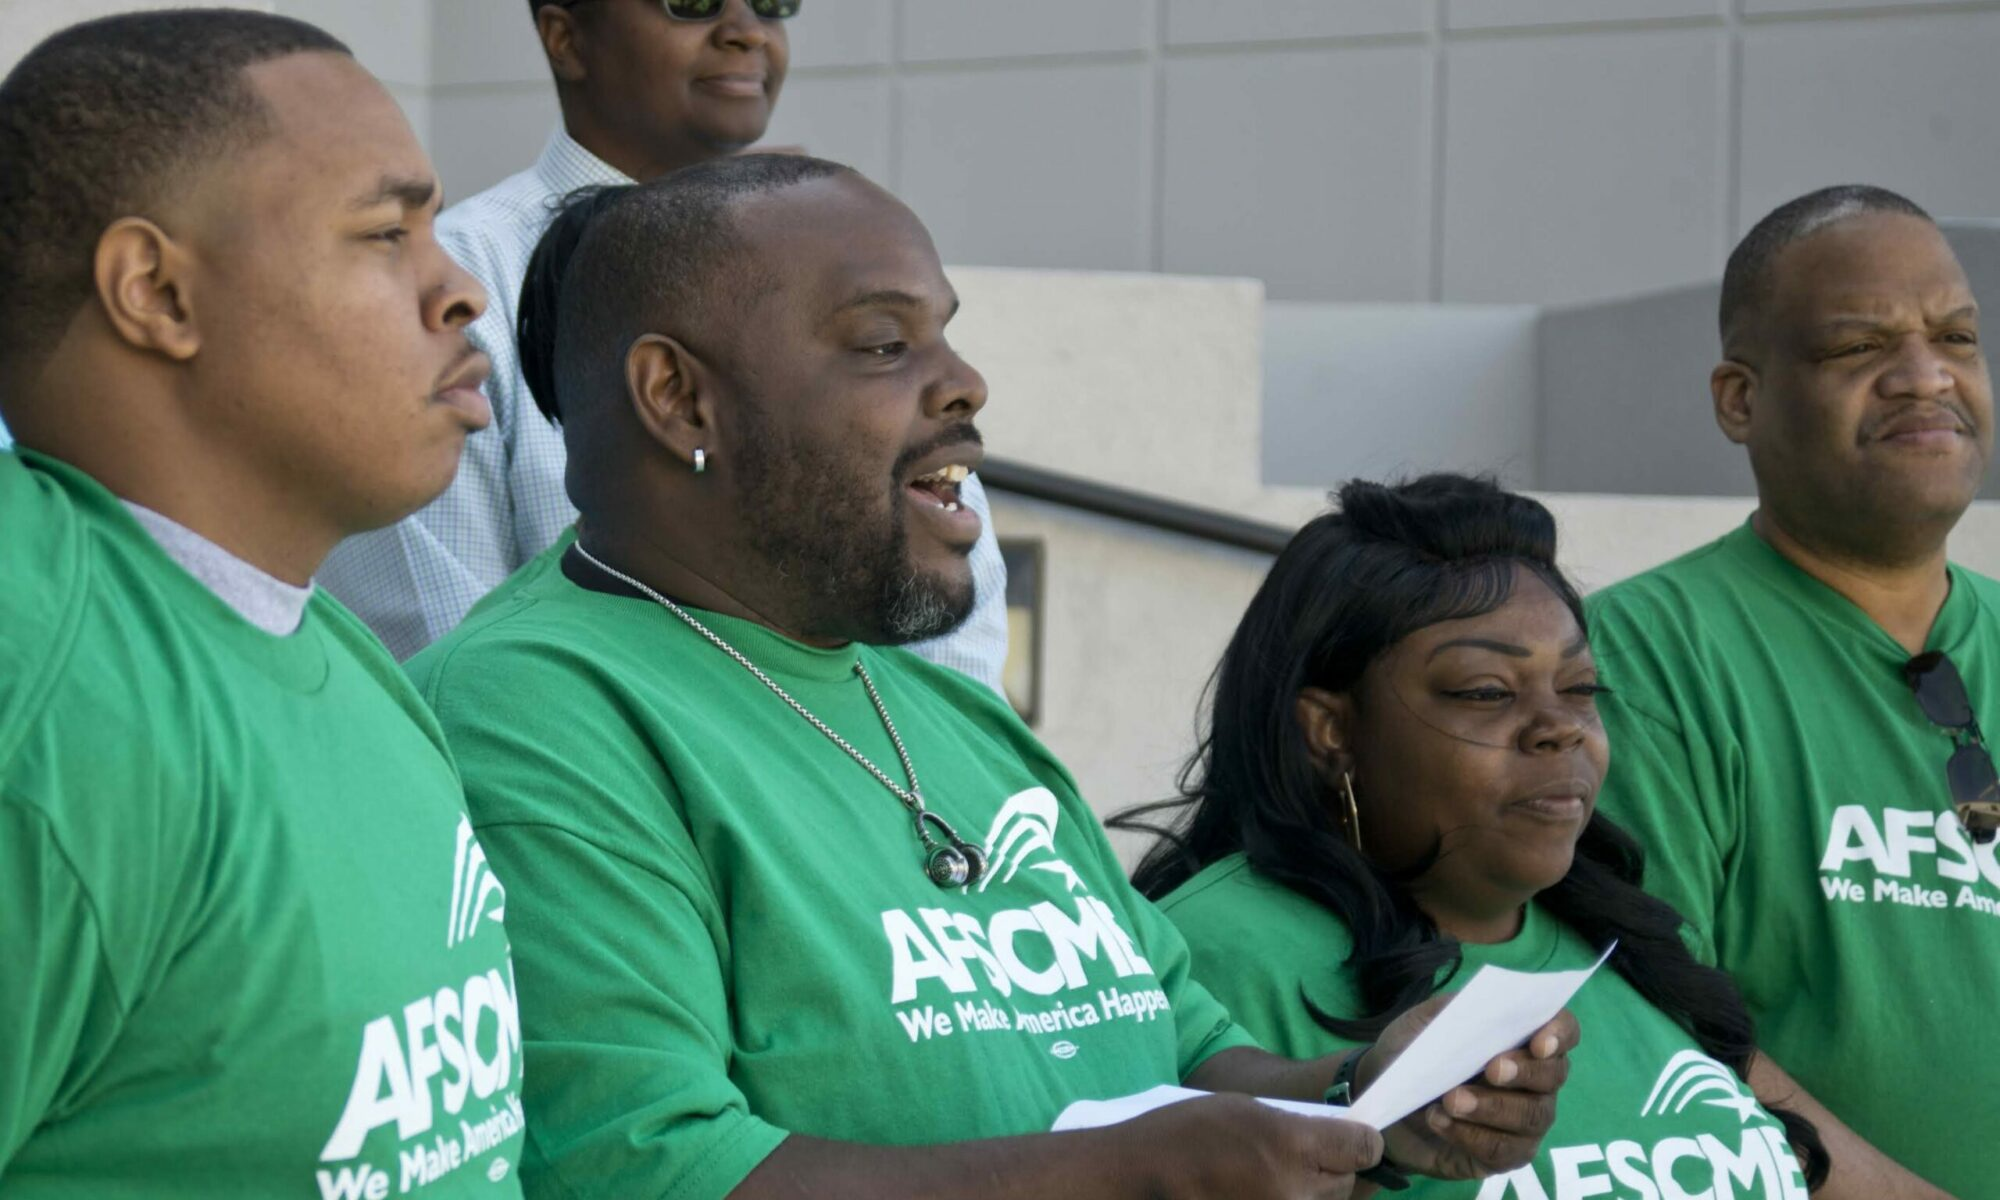 AFSCME workers prepare to unionize